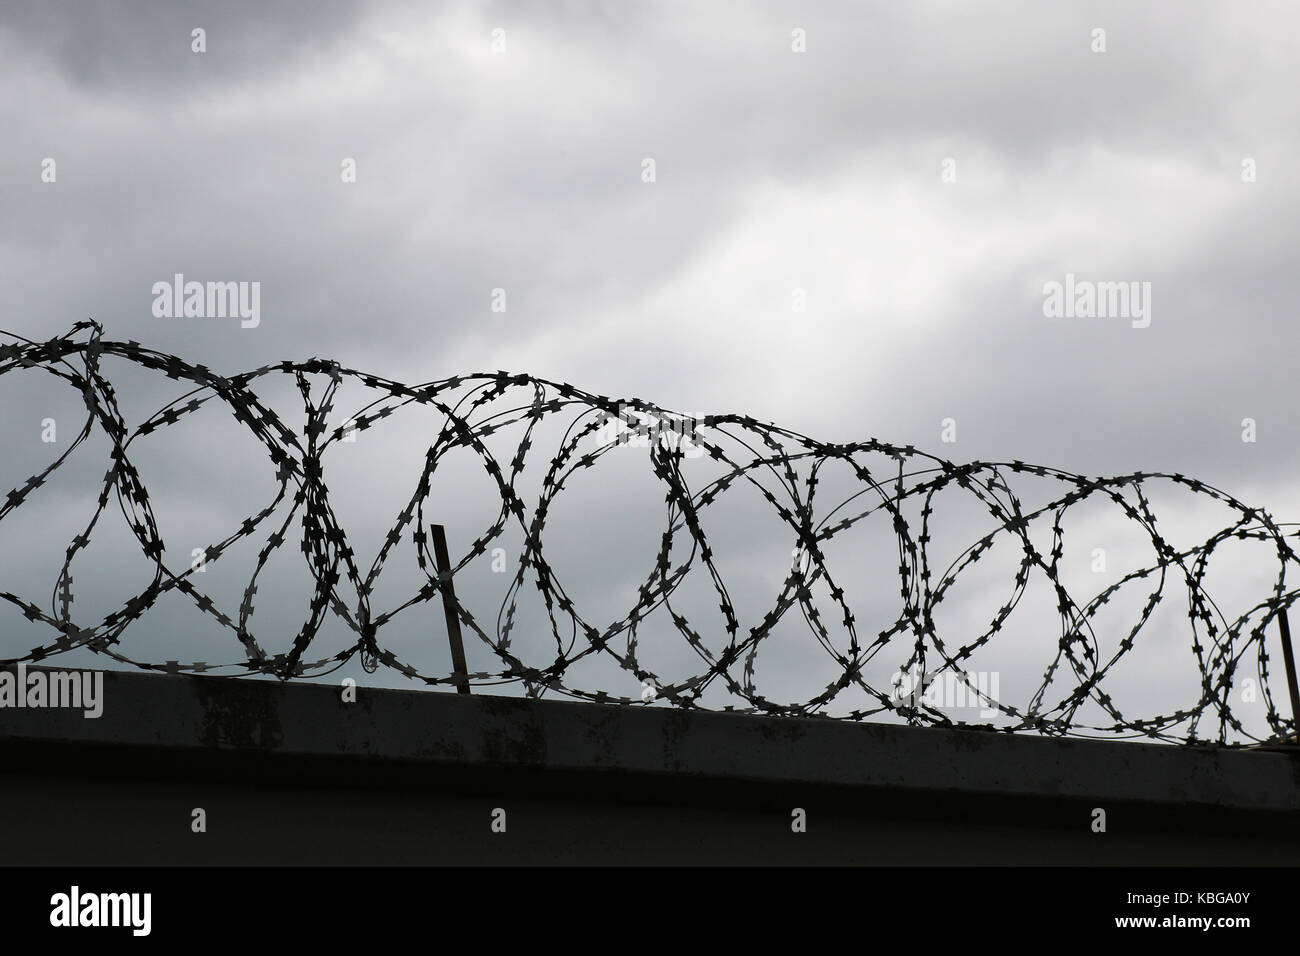 Barb Wire Fences Stock Photos & Barb Wire Fences Stock Images - Alamy